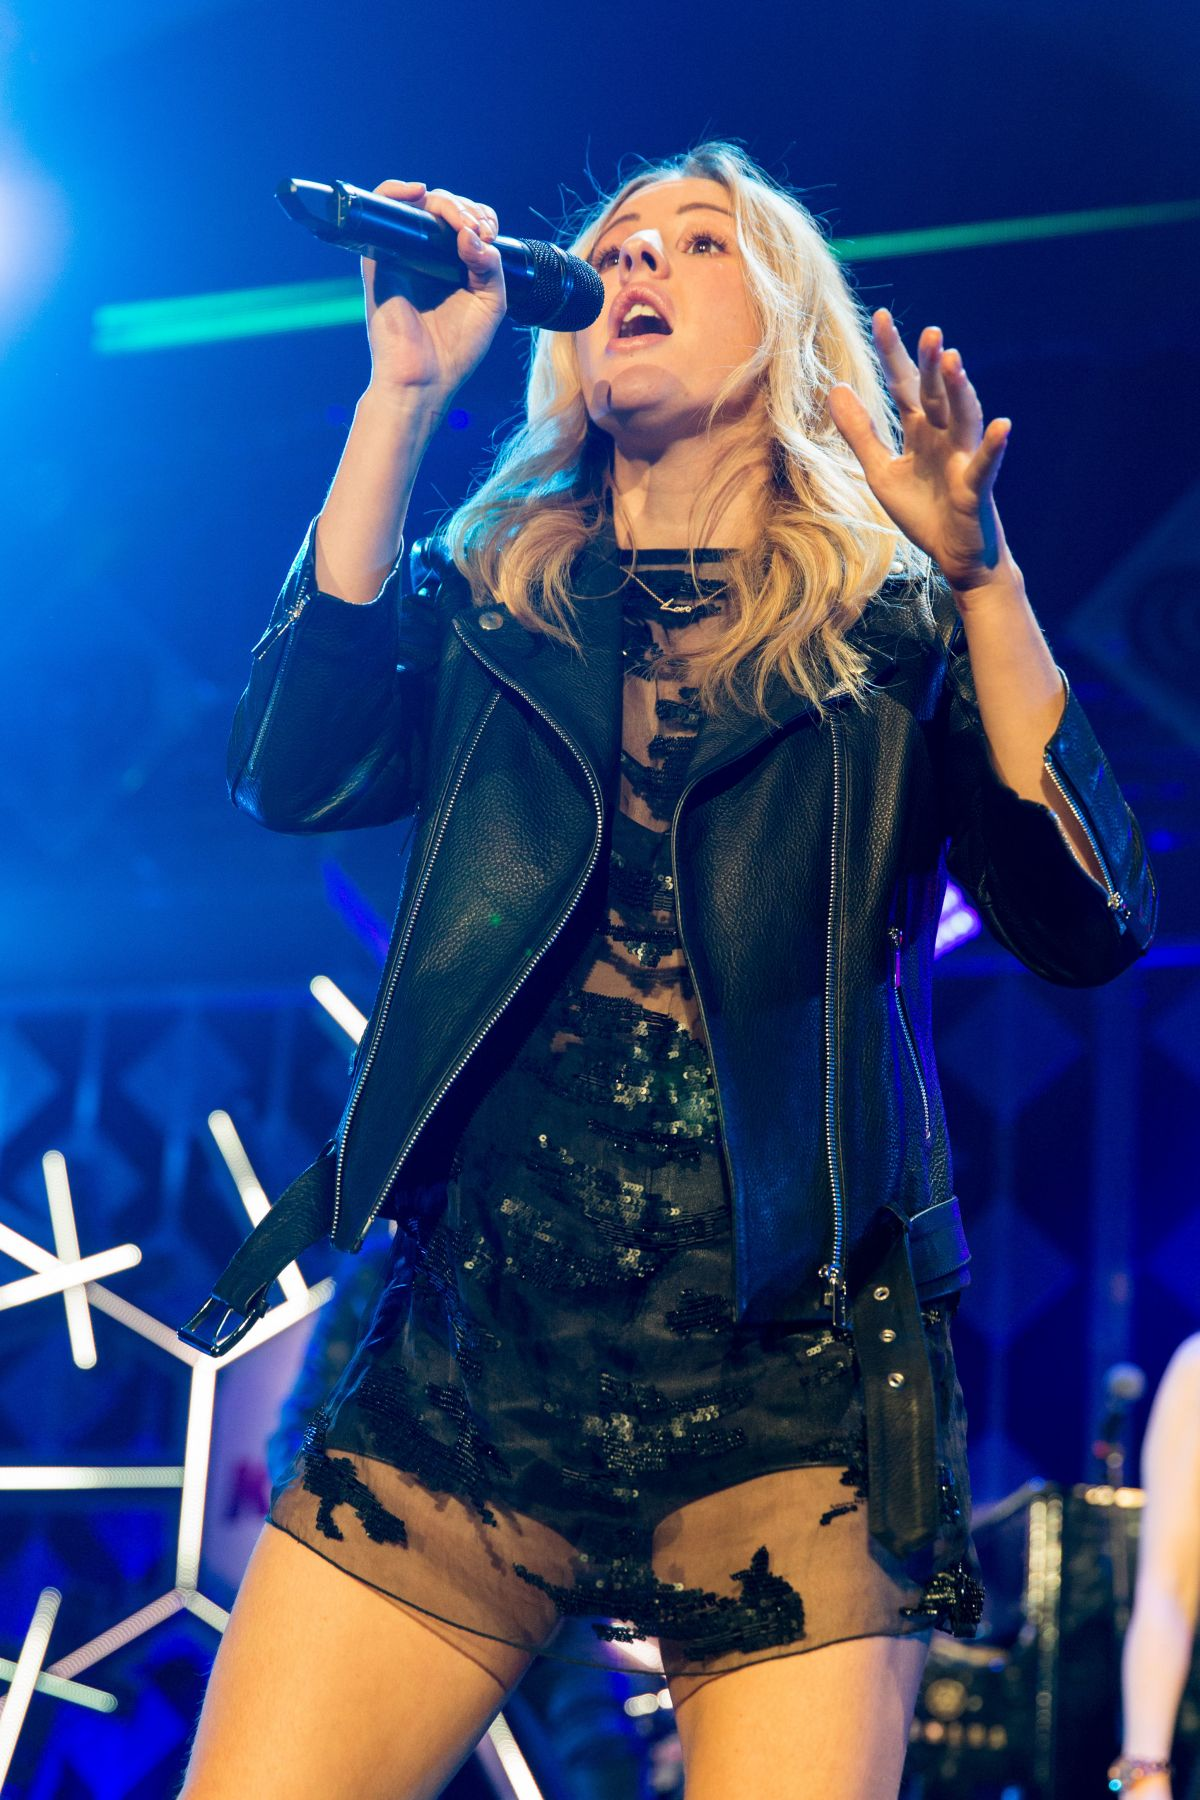 ELLIE GOULDING Performs at Iheartradio Jingle Ball 2016 in Rosemont 12/14/2016